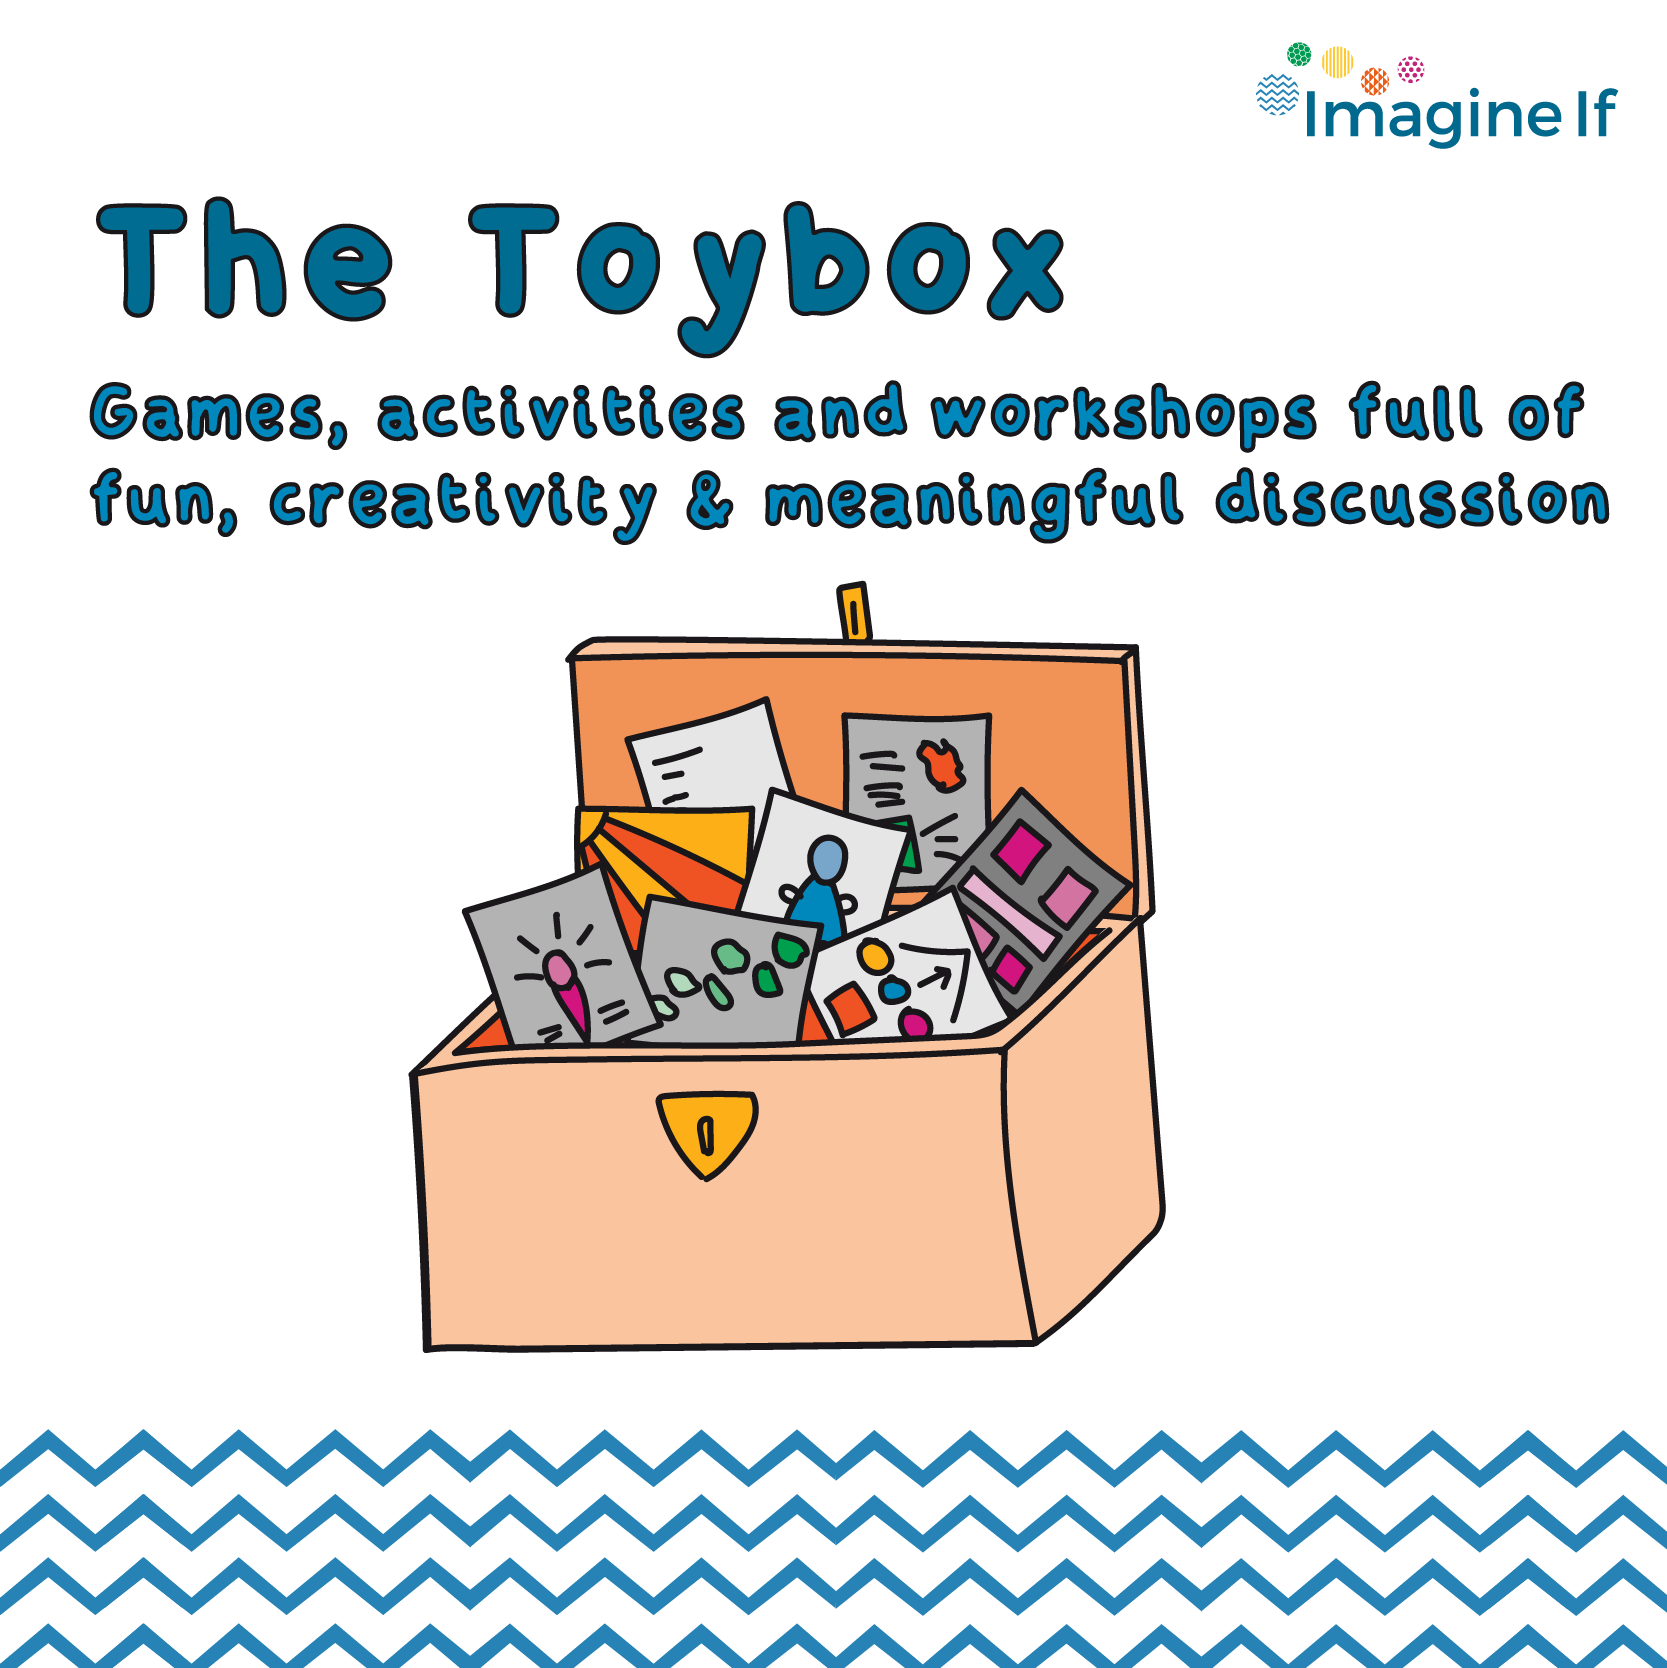 The Toybox Square_The Toybox square